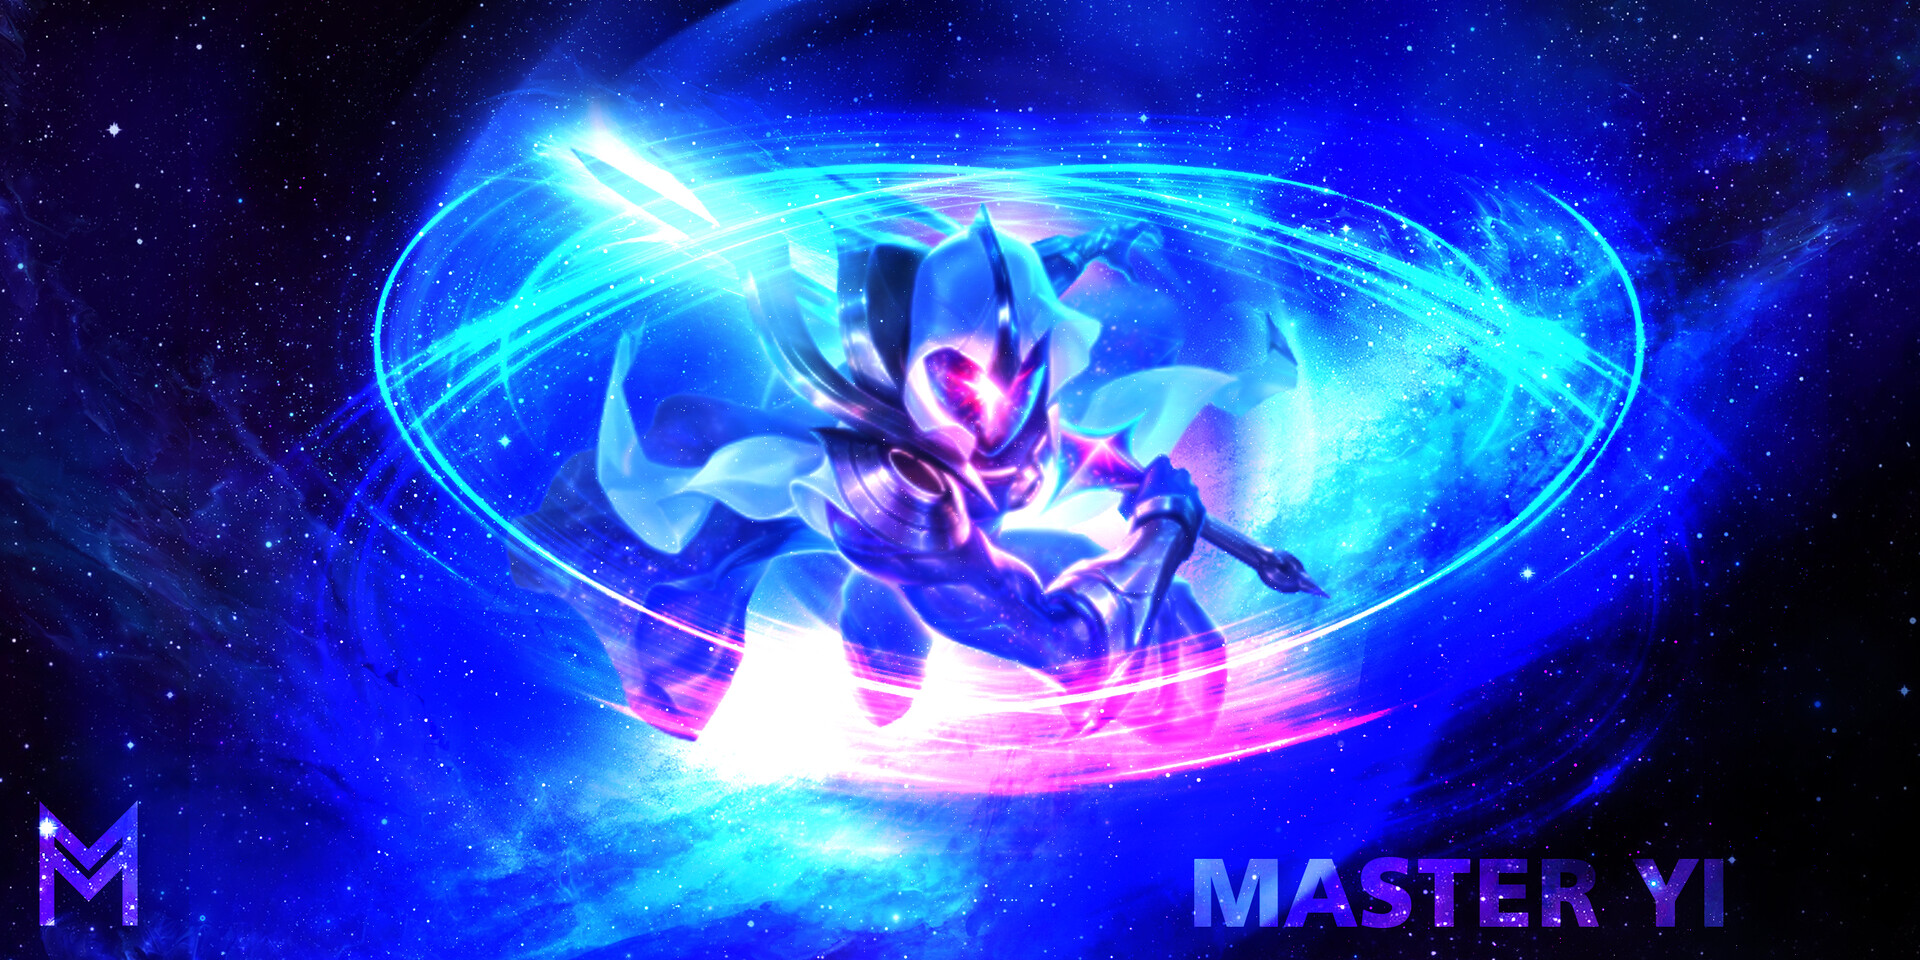 Master Yi Wallpaper Posted By Zoey Thompson